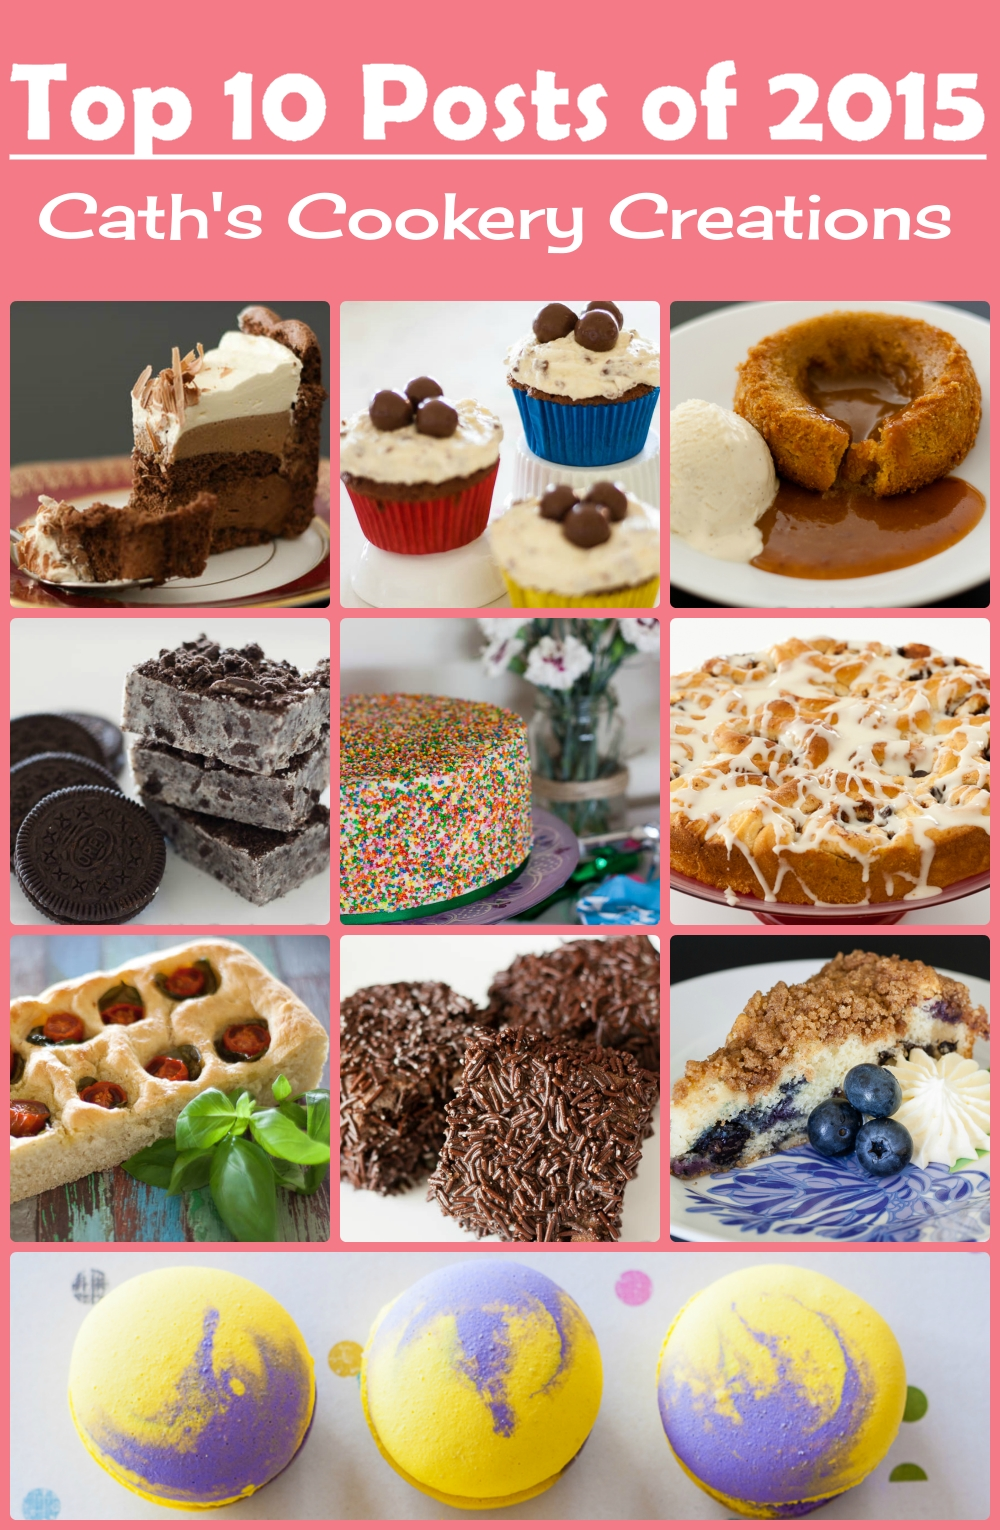 Top 10 Posts of 2015 from Cath's Cookery Creations! | www.cathscookerycreations.com